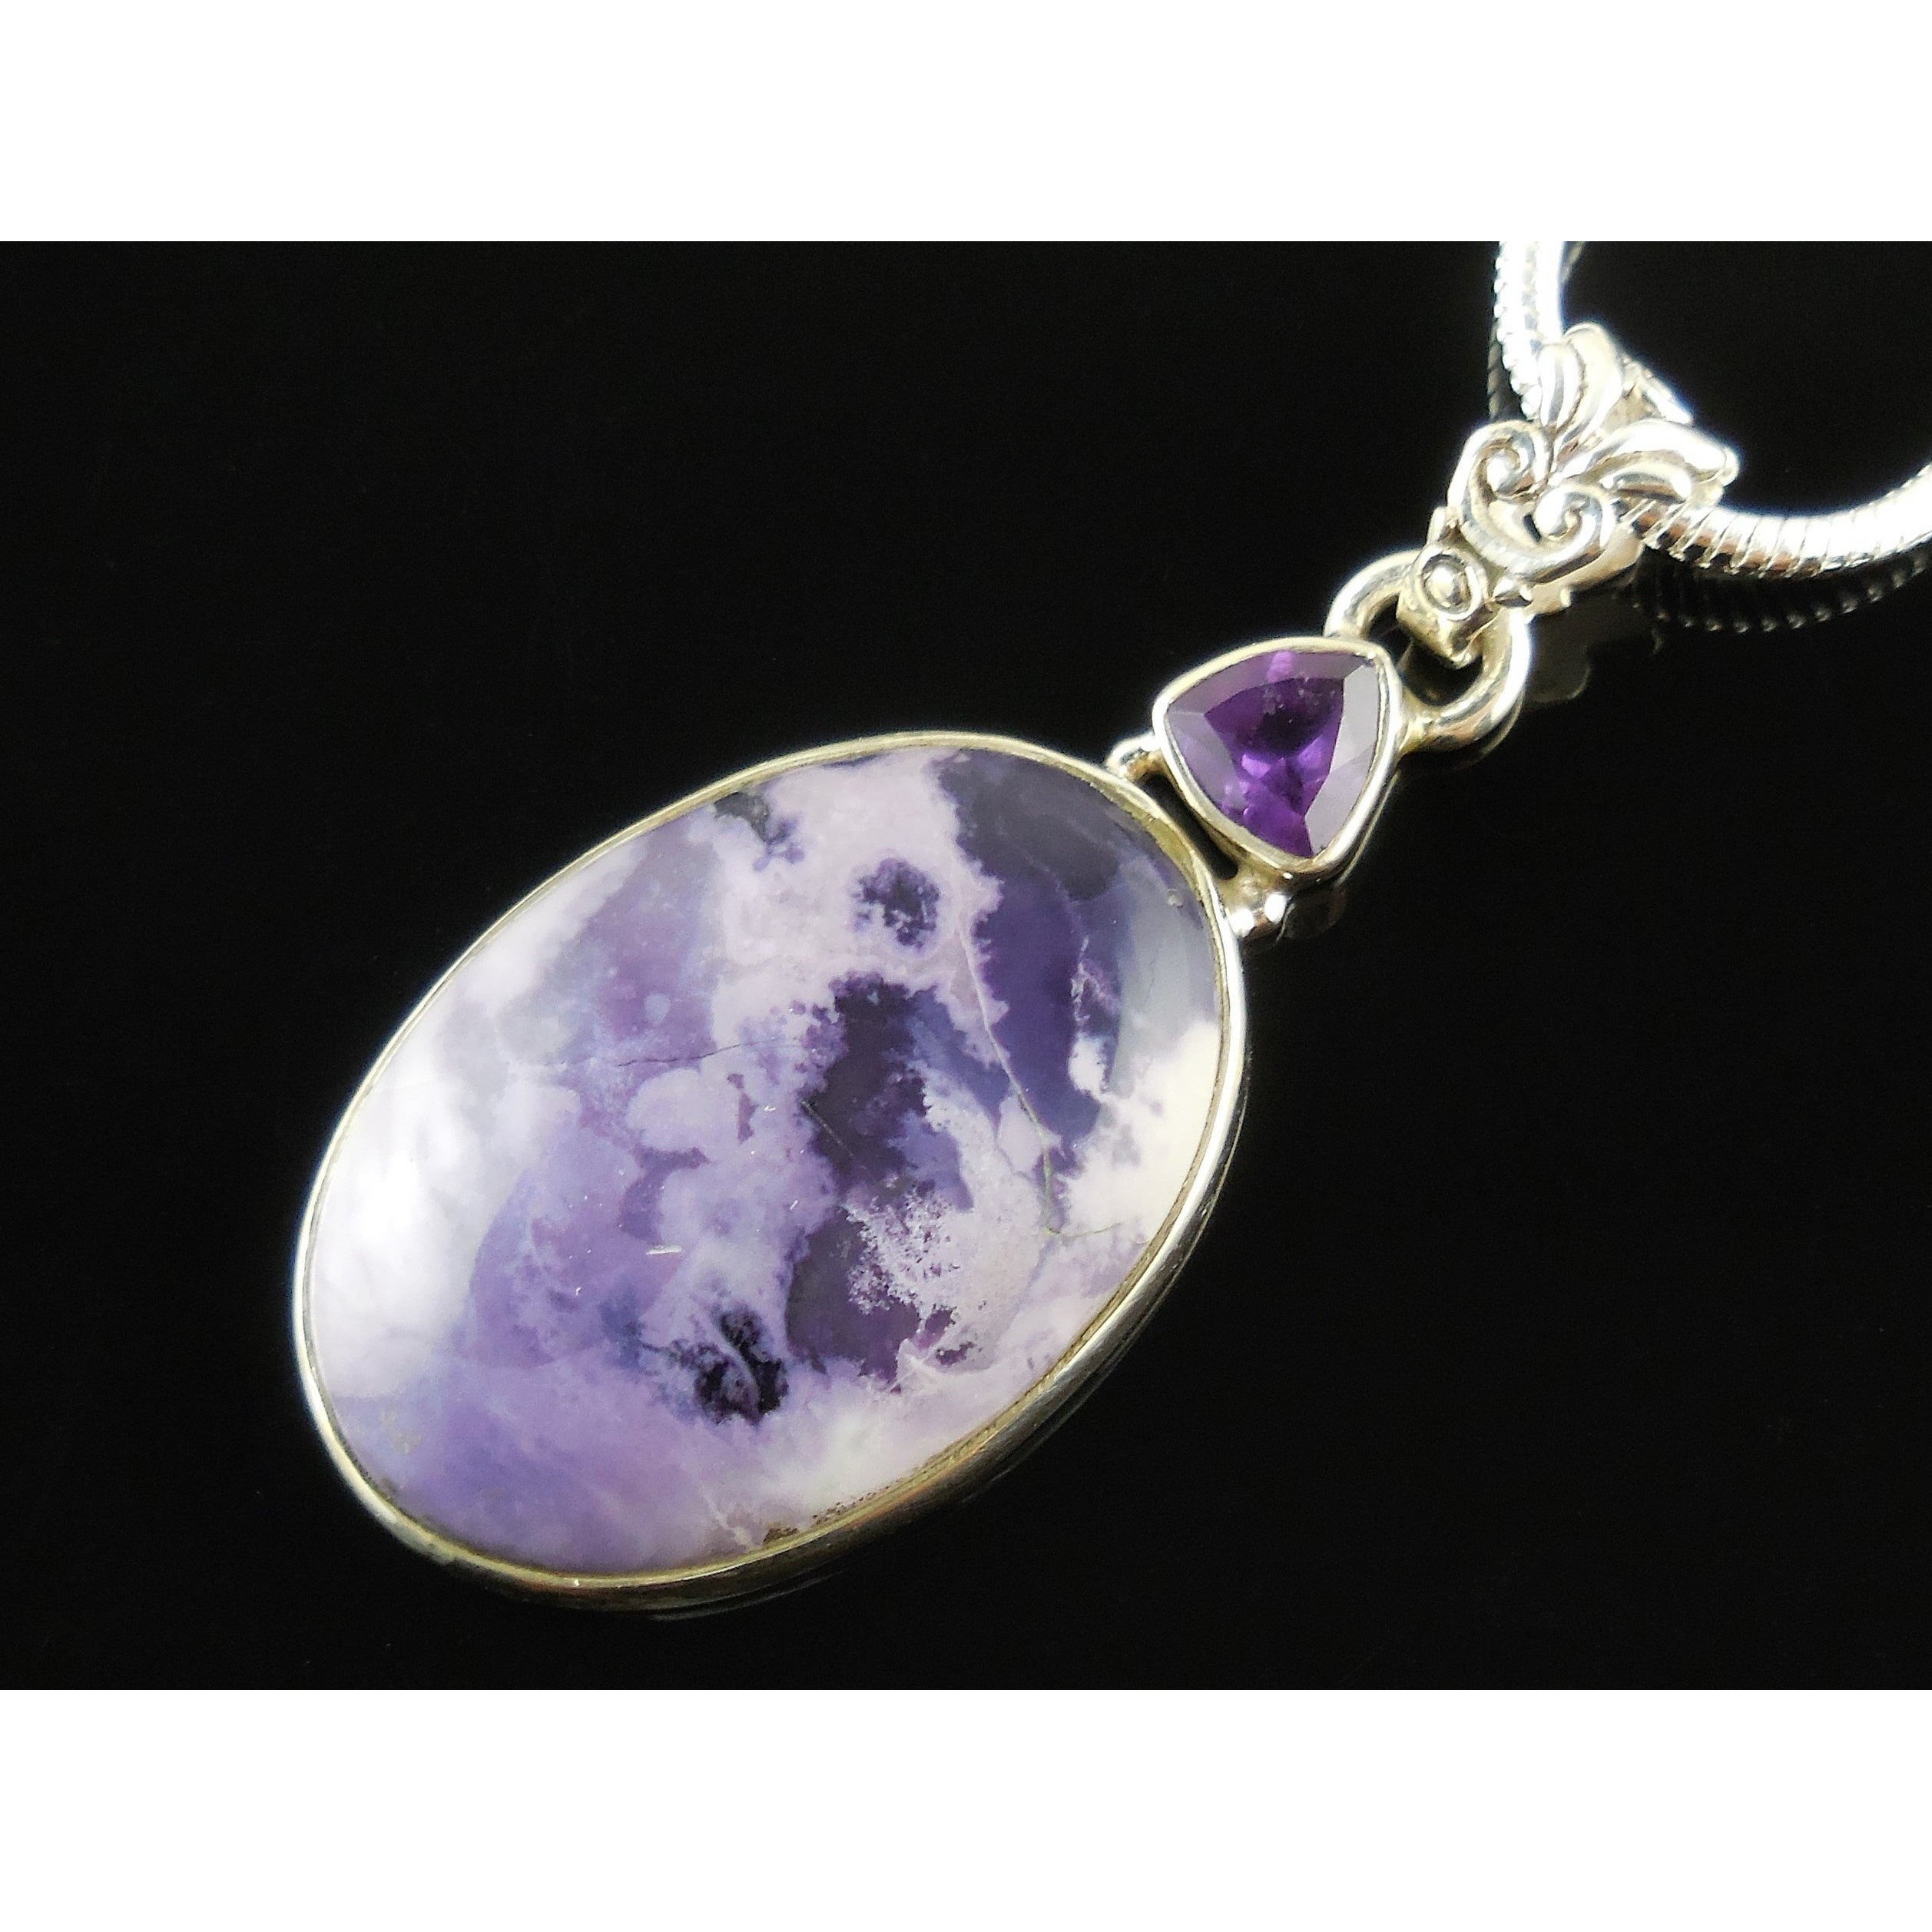 Tiffany Stone & Amethyst Sterling Silver Pendant/Necklace